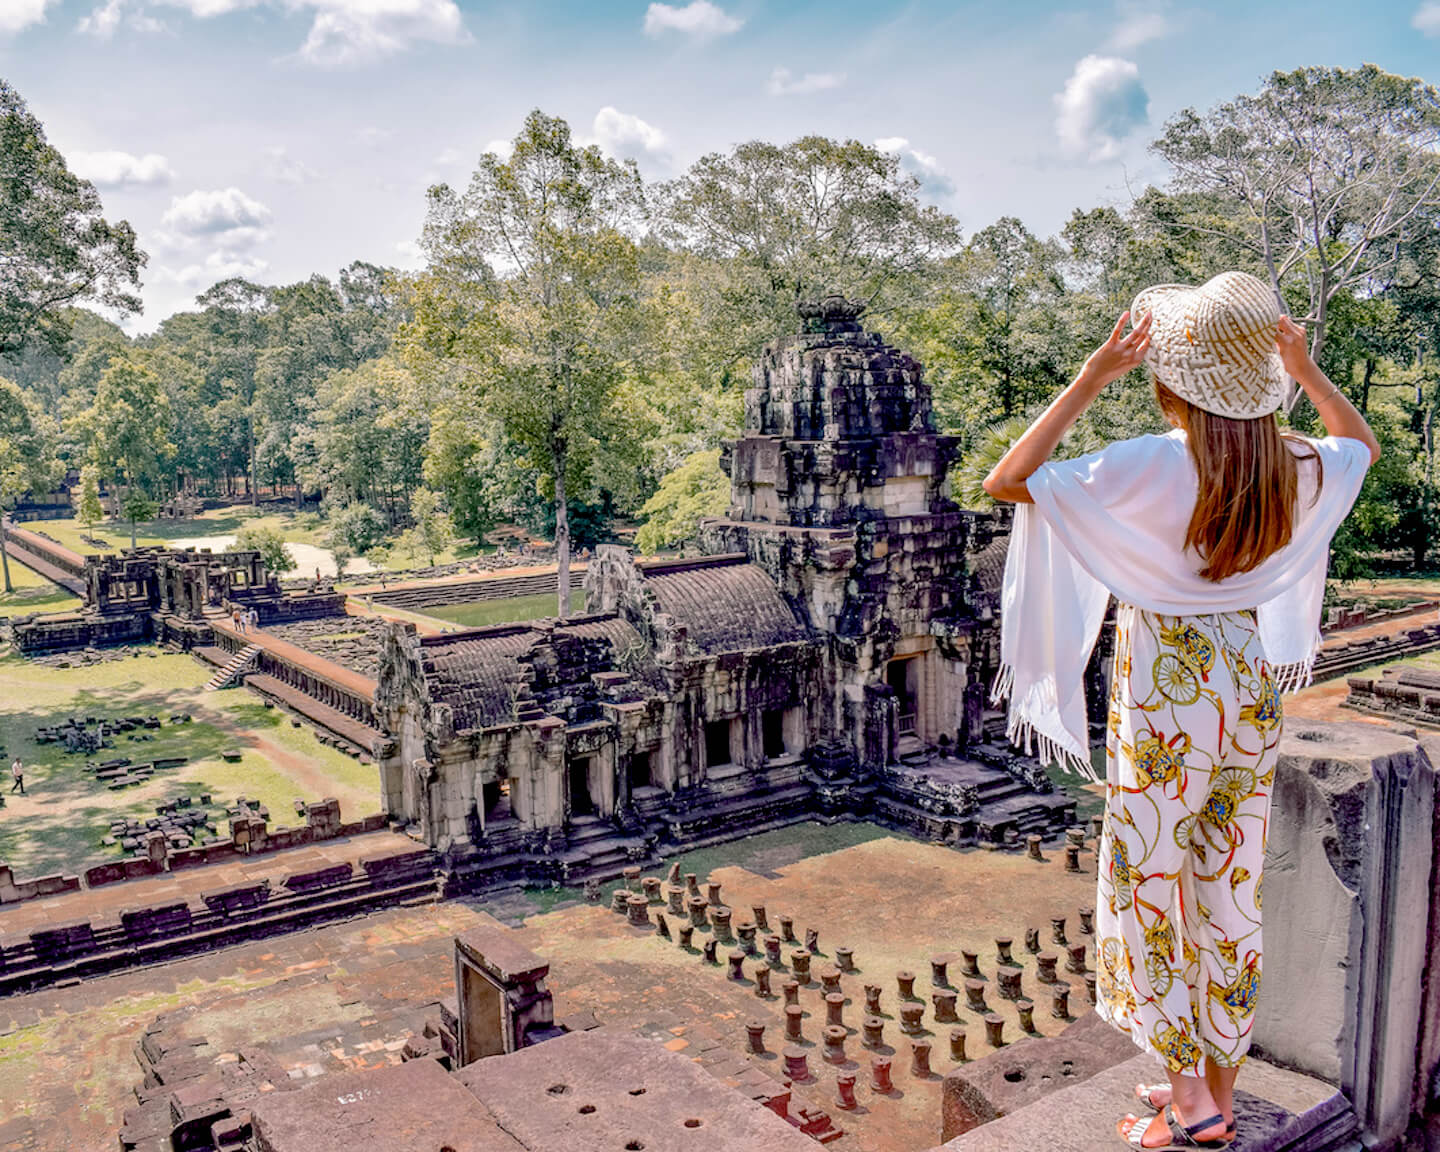 overlooking the area of Angkor from the top of a temple